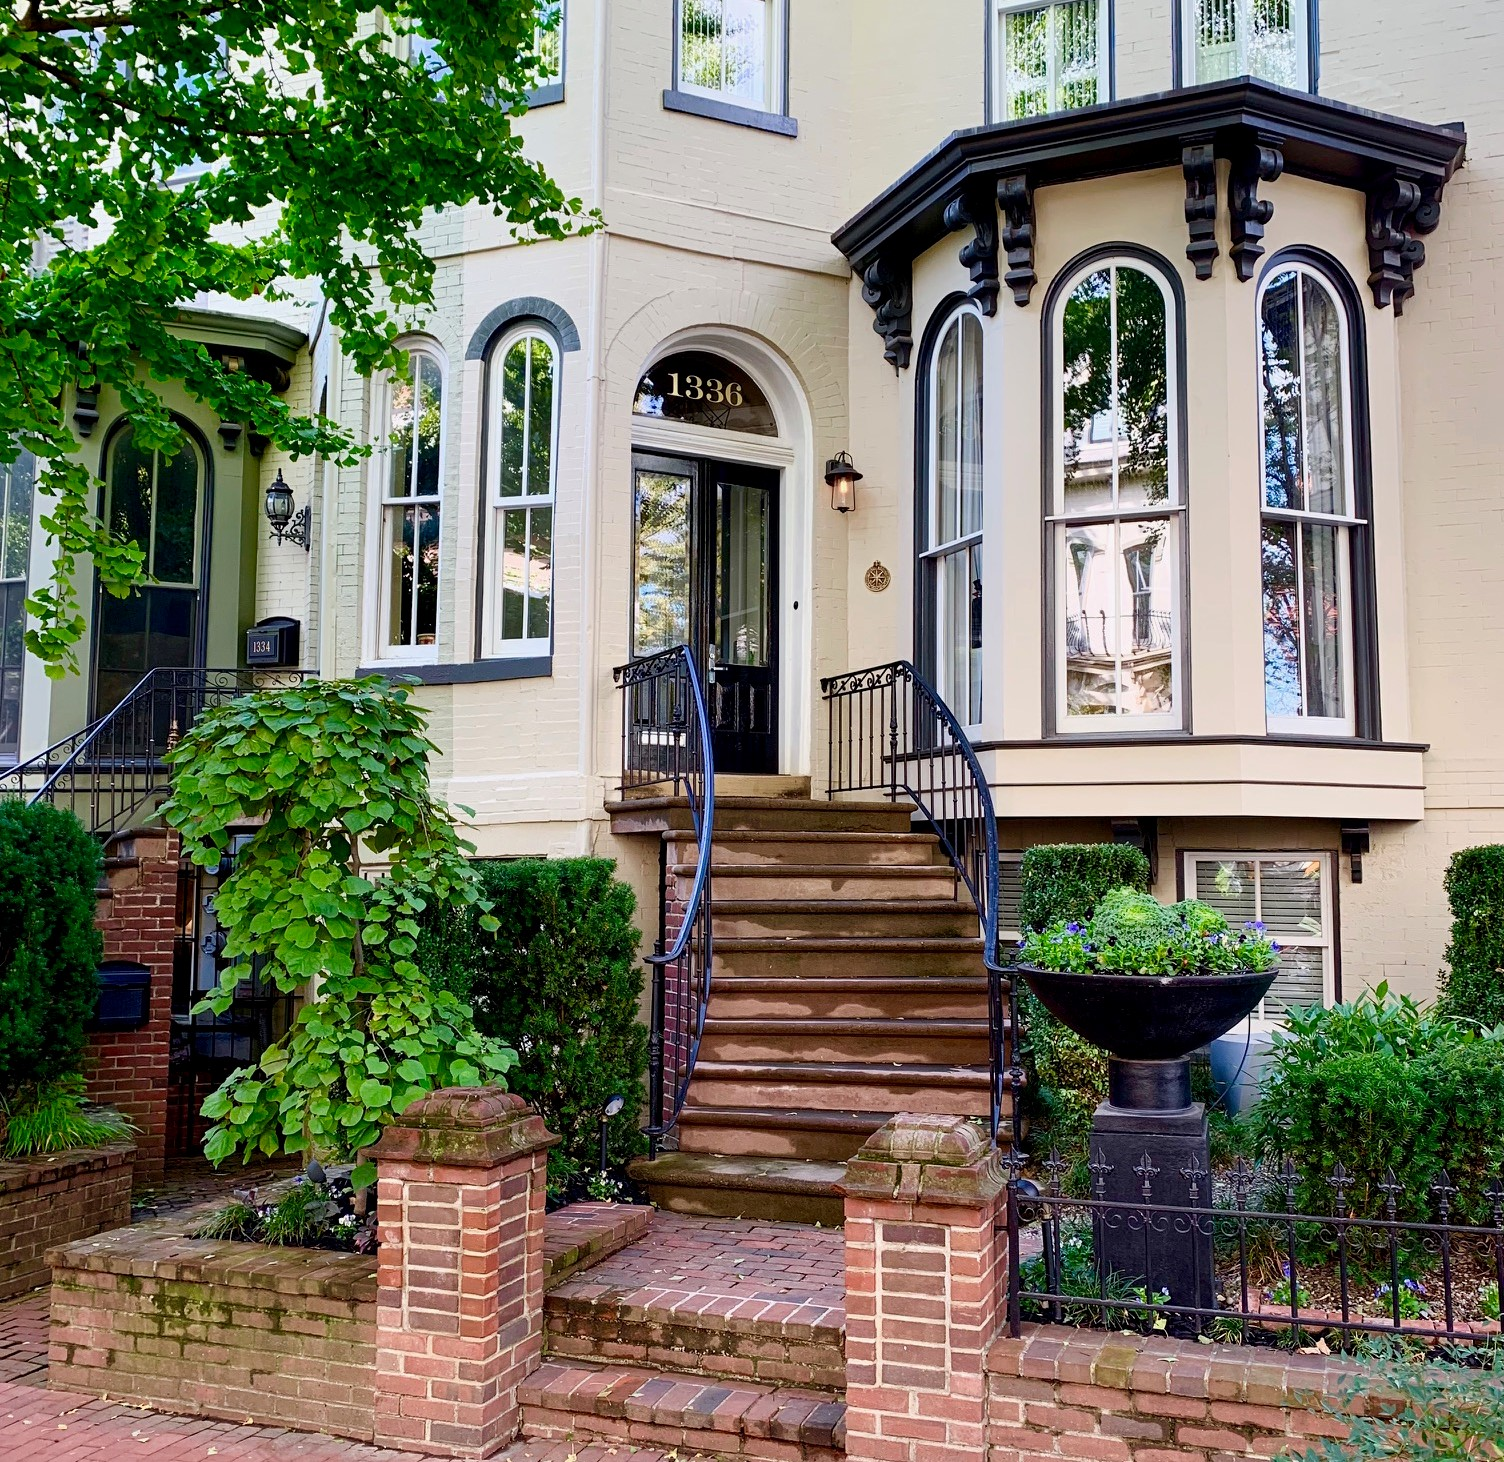 Washington, DC Historic Homes For Sale. Corcoran St in Logan Circle. Artyom Shmatko Luxury Real Estate Agent